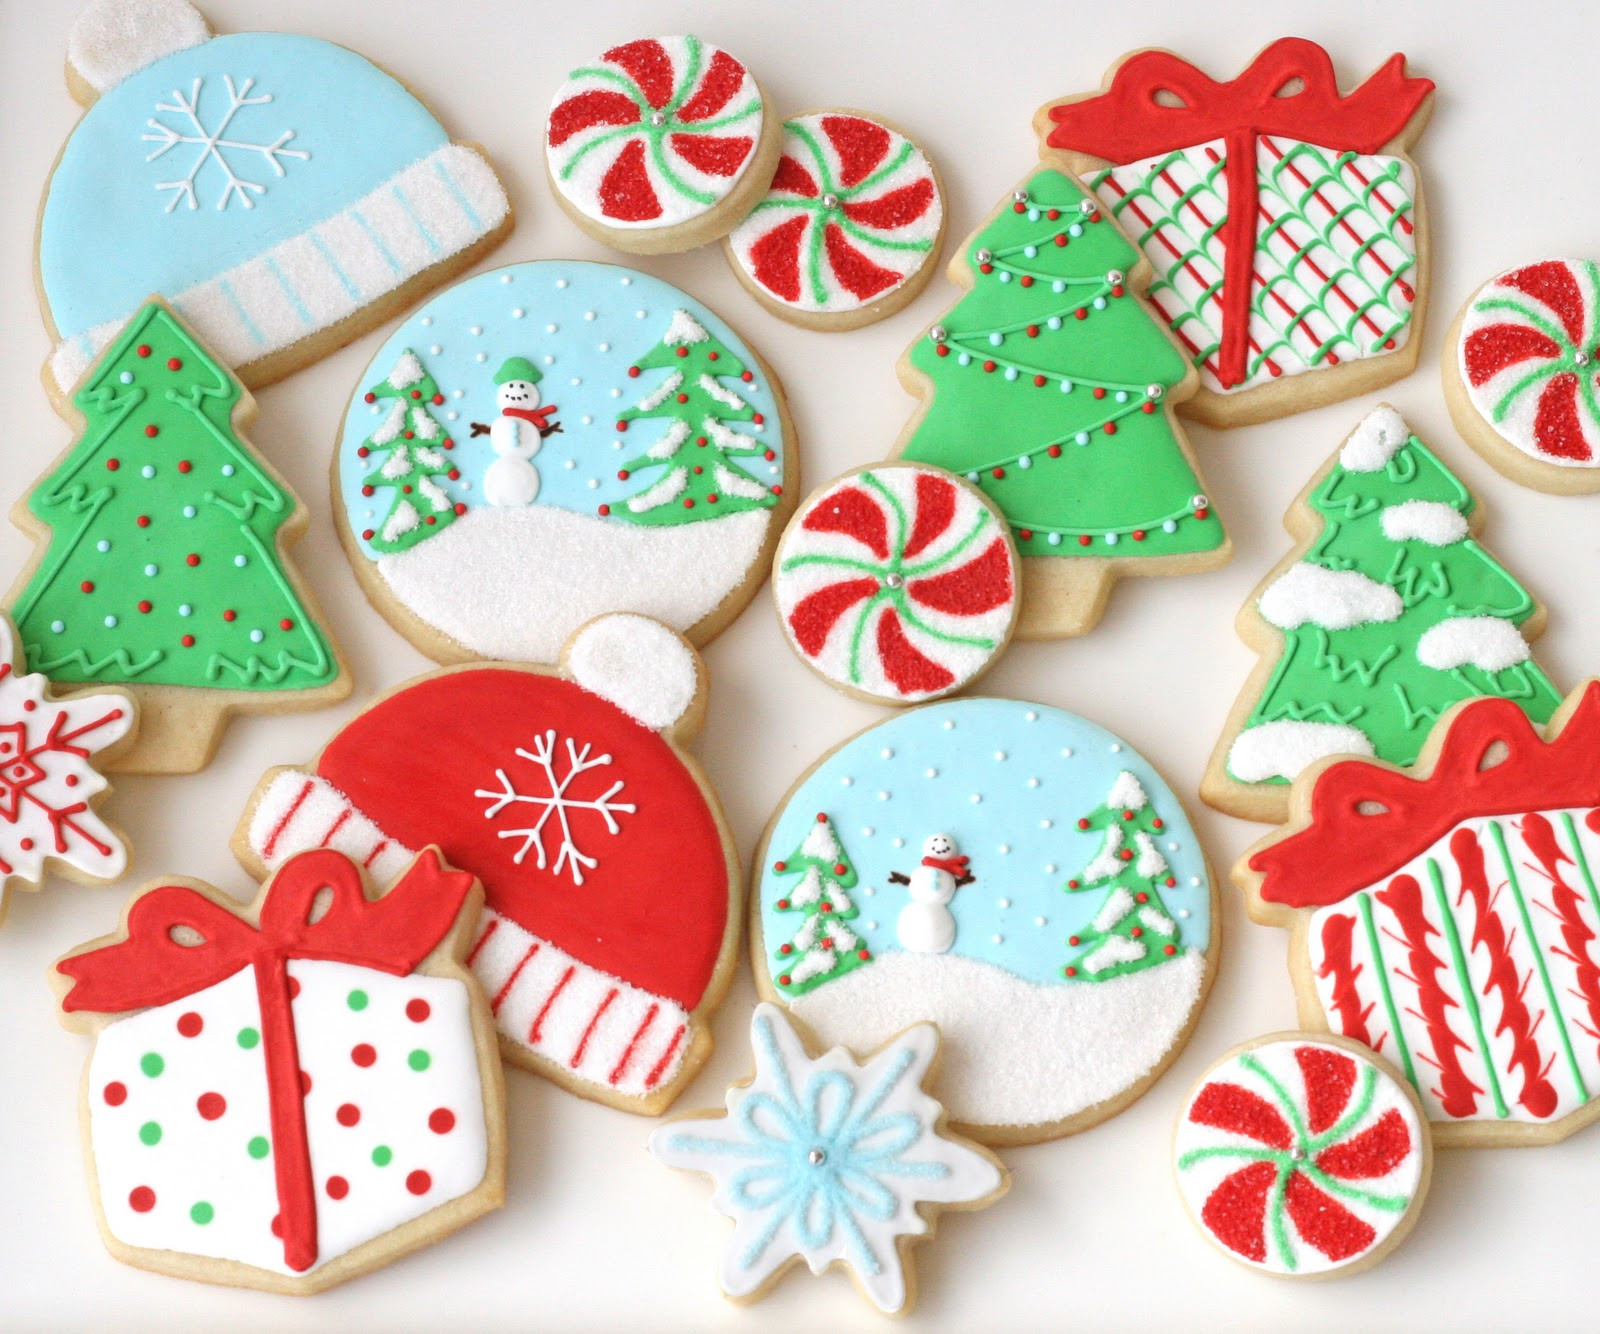 Christmas Sugar Cookies With Icing  Christmas Cookies Galore Glorious Treats